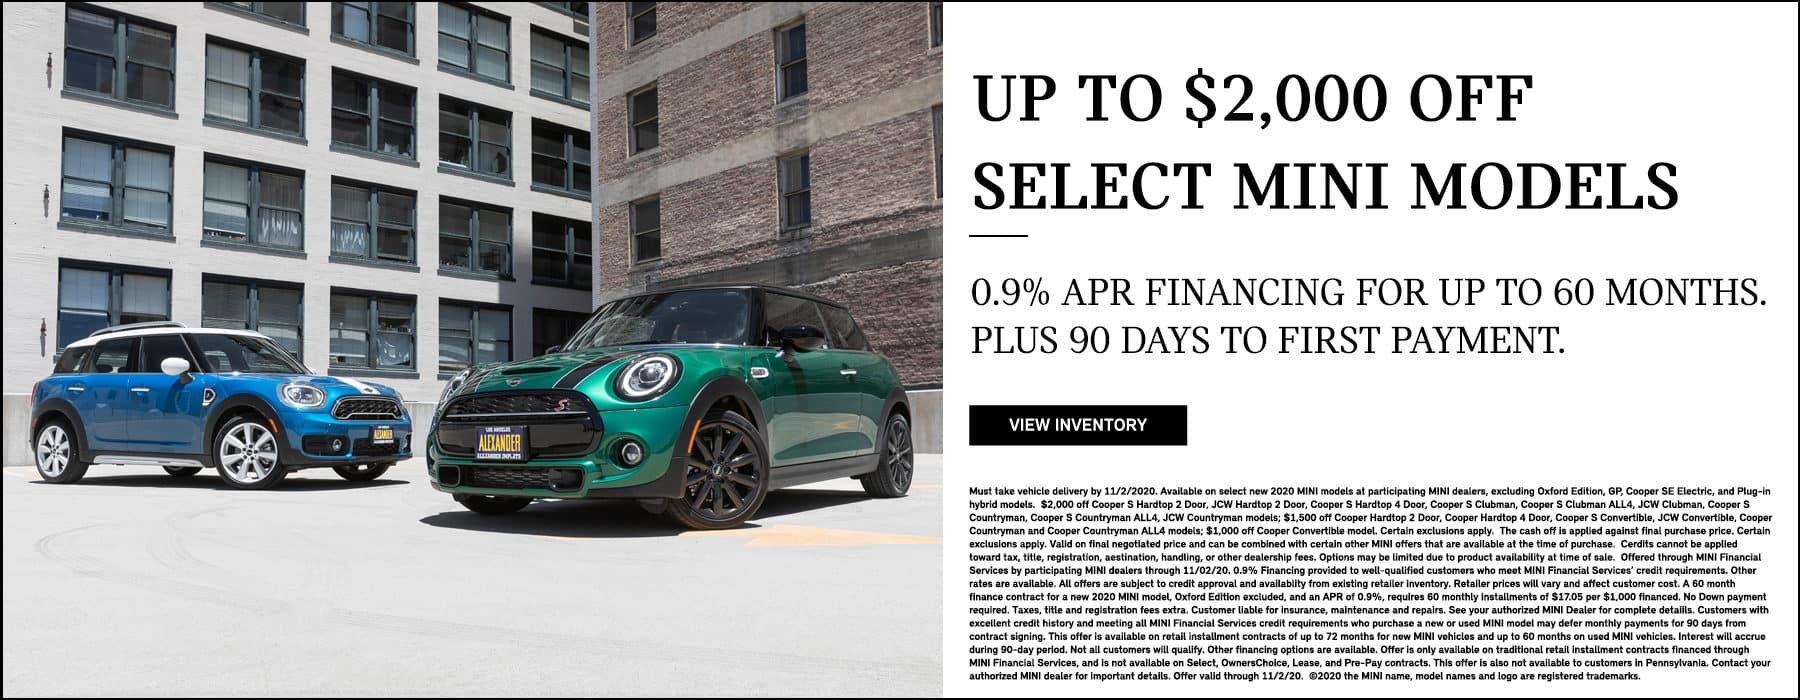 Up to $2,000 off select MINI models. 0.9% Financing for up to 60 months. Plus 90 days to first payment. View Inventory.